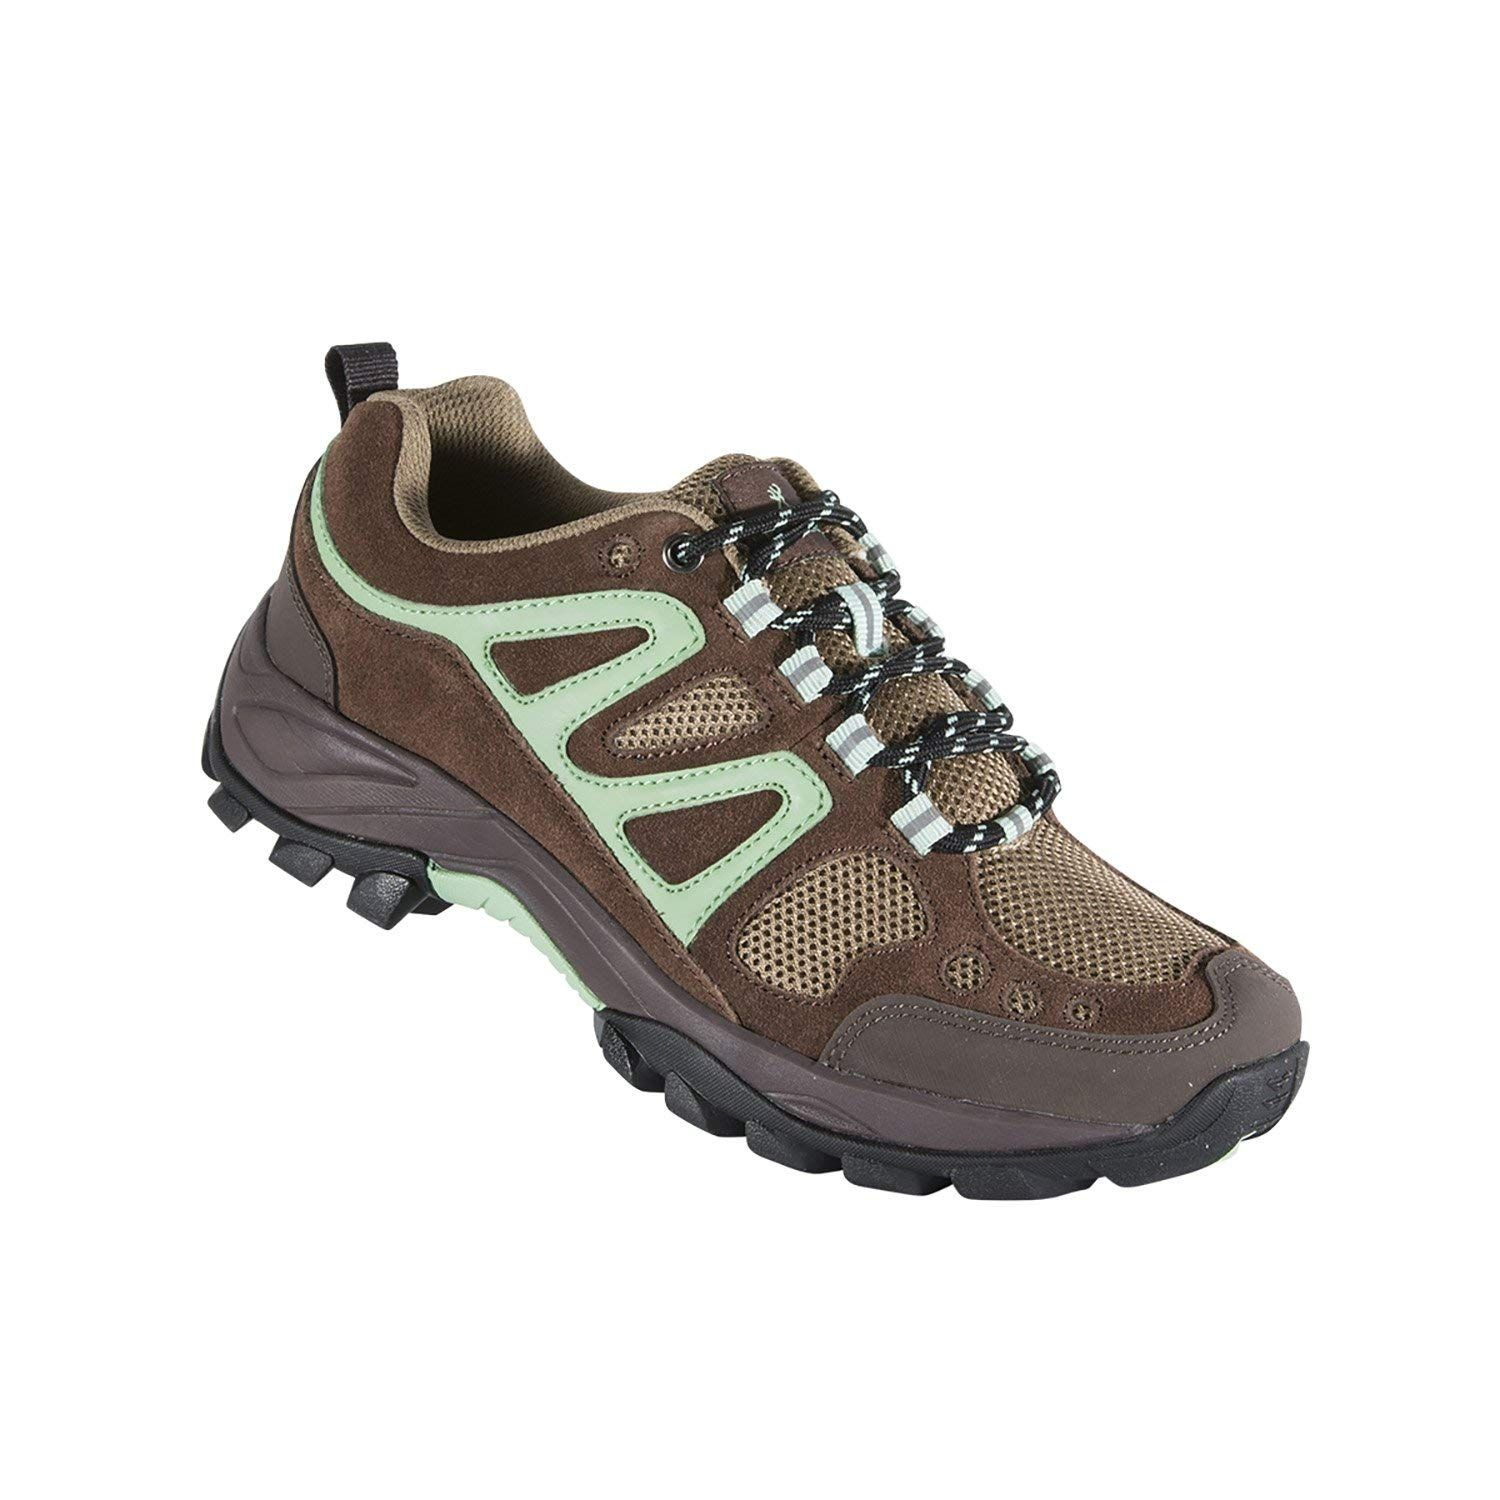 c07b0ce3864f3 Browning Women's Delano Trail Shoes *** Thanks for having seen our ...